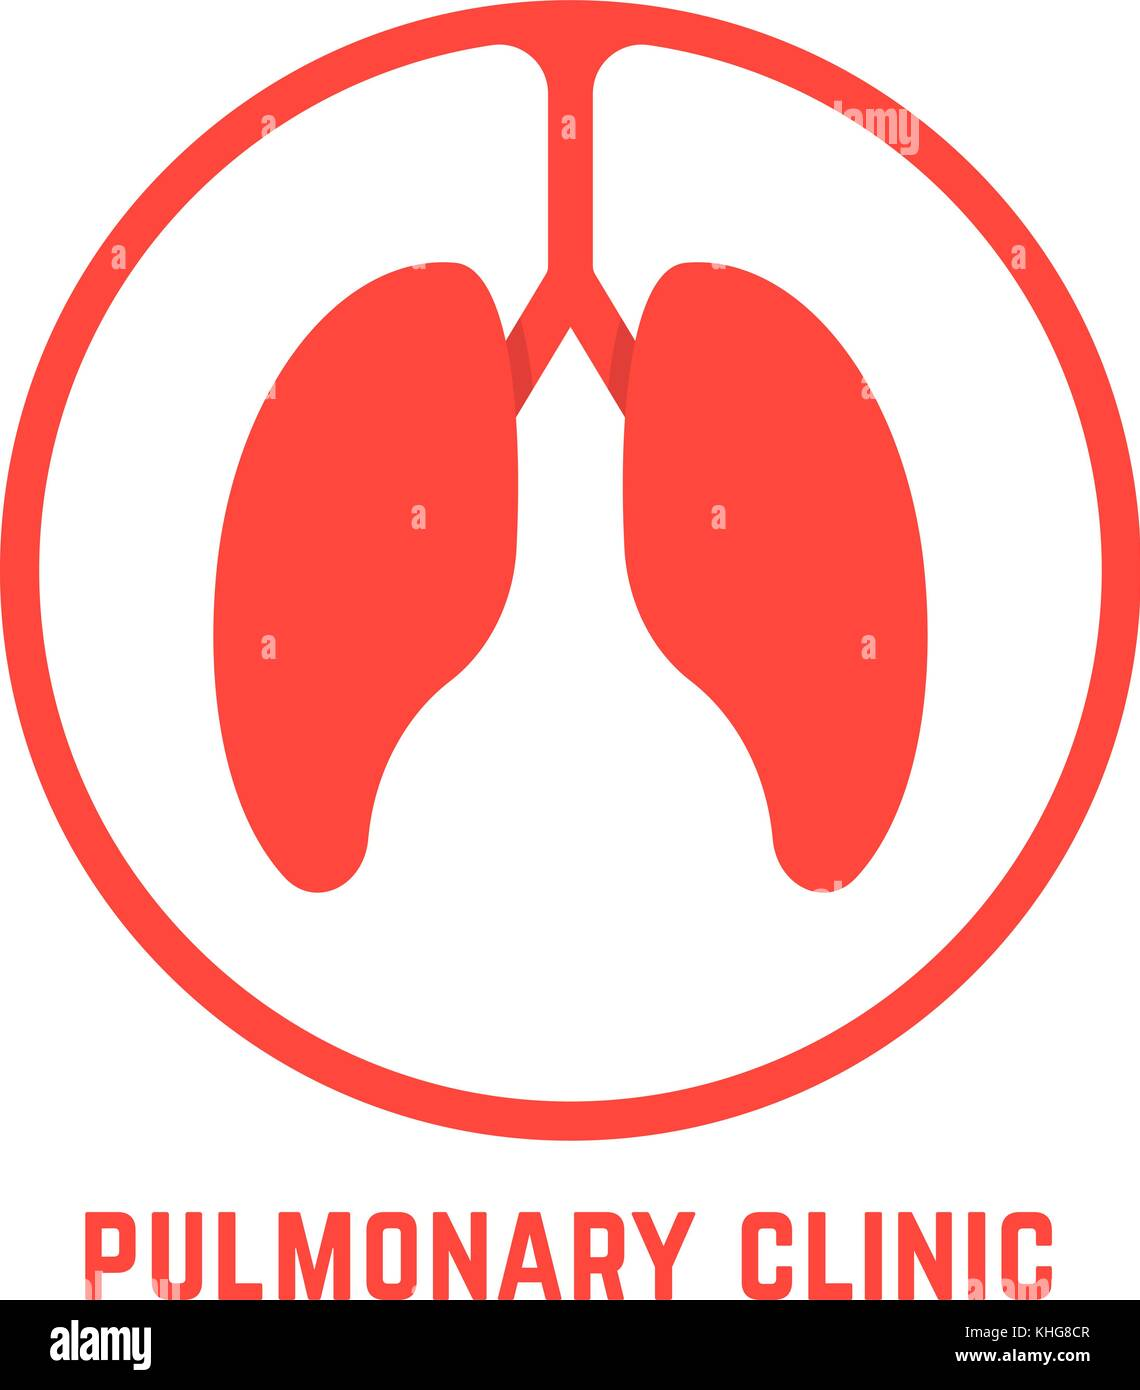 red outline pulmonary clinic logo - Stock Image